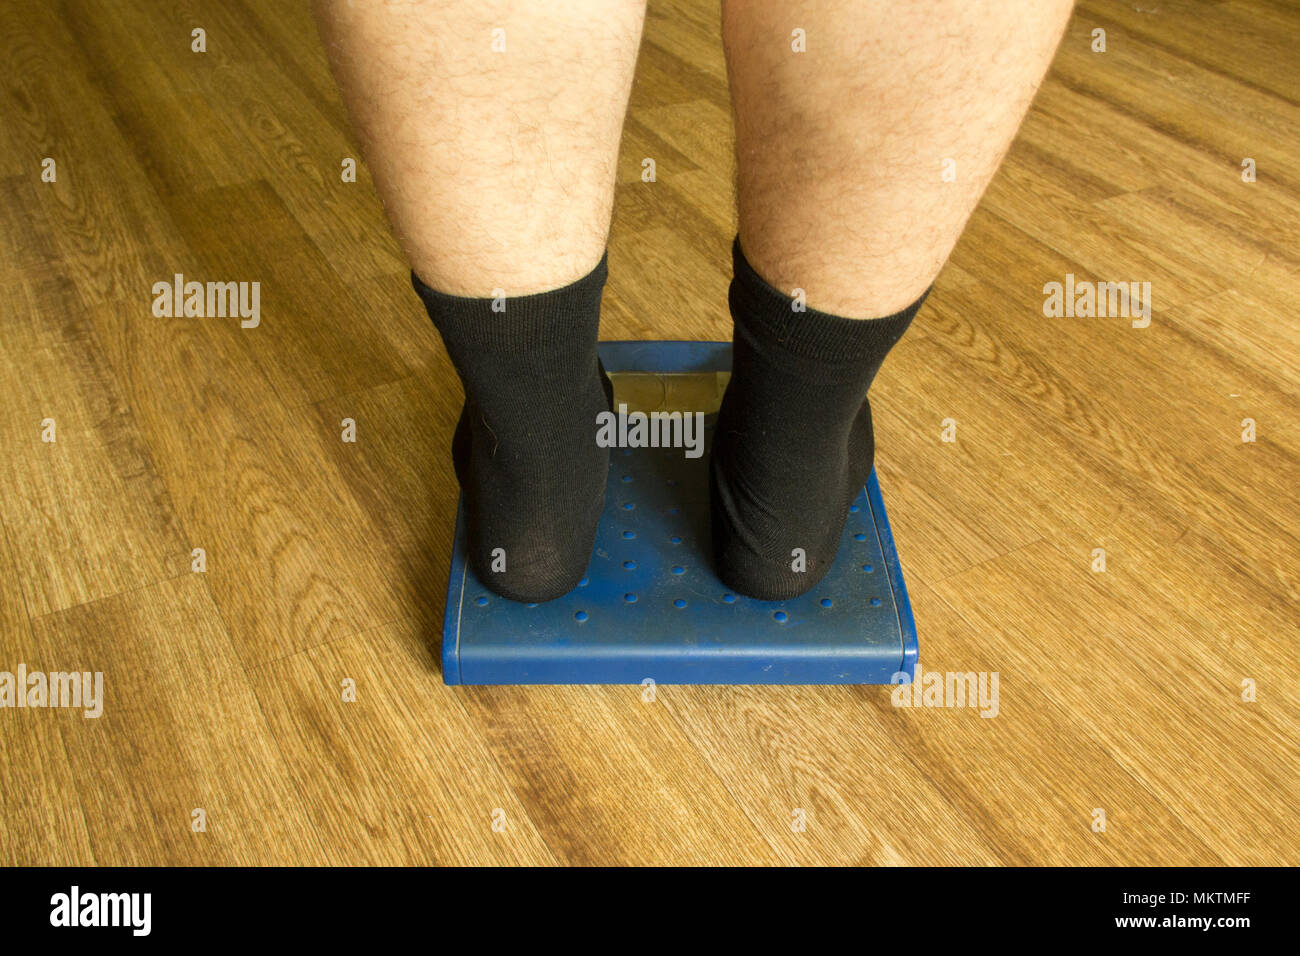 Men's legs in black socks stand on the mechanical scales of blue color (rear view) Stock Photo